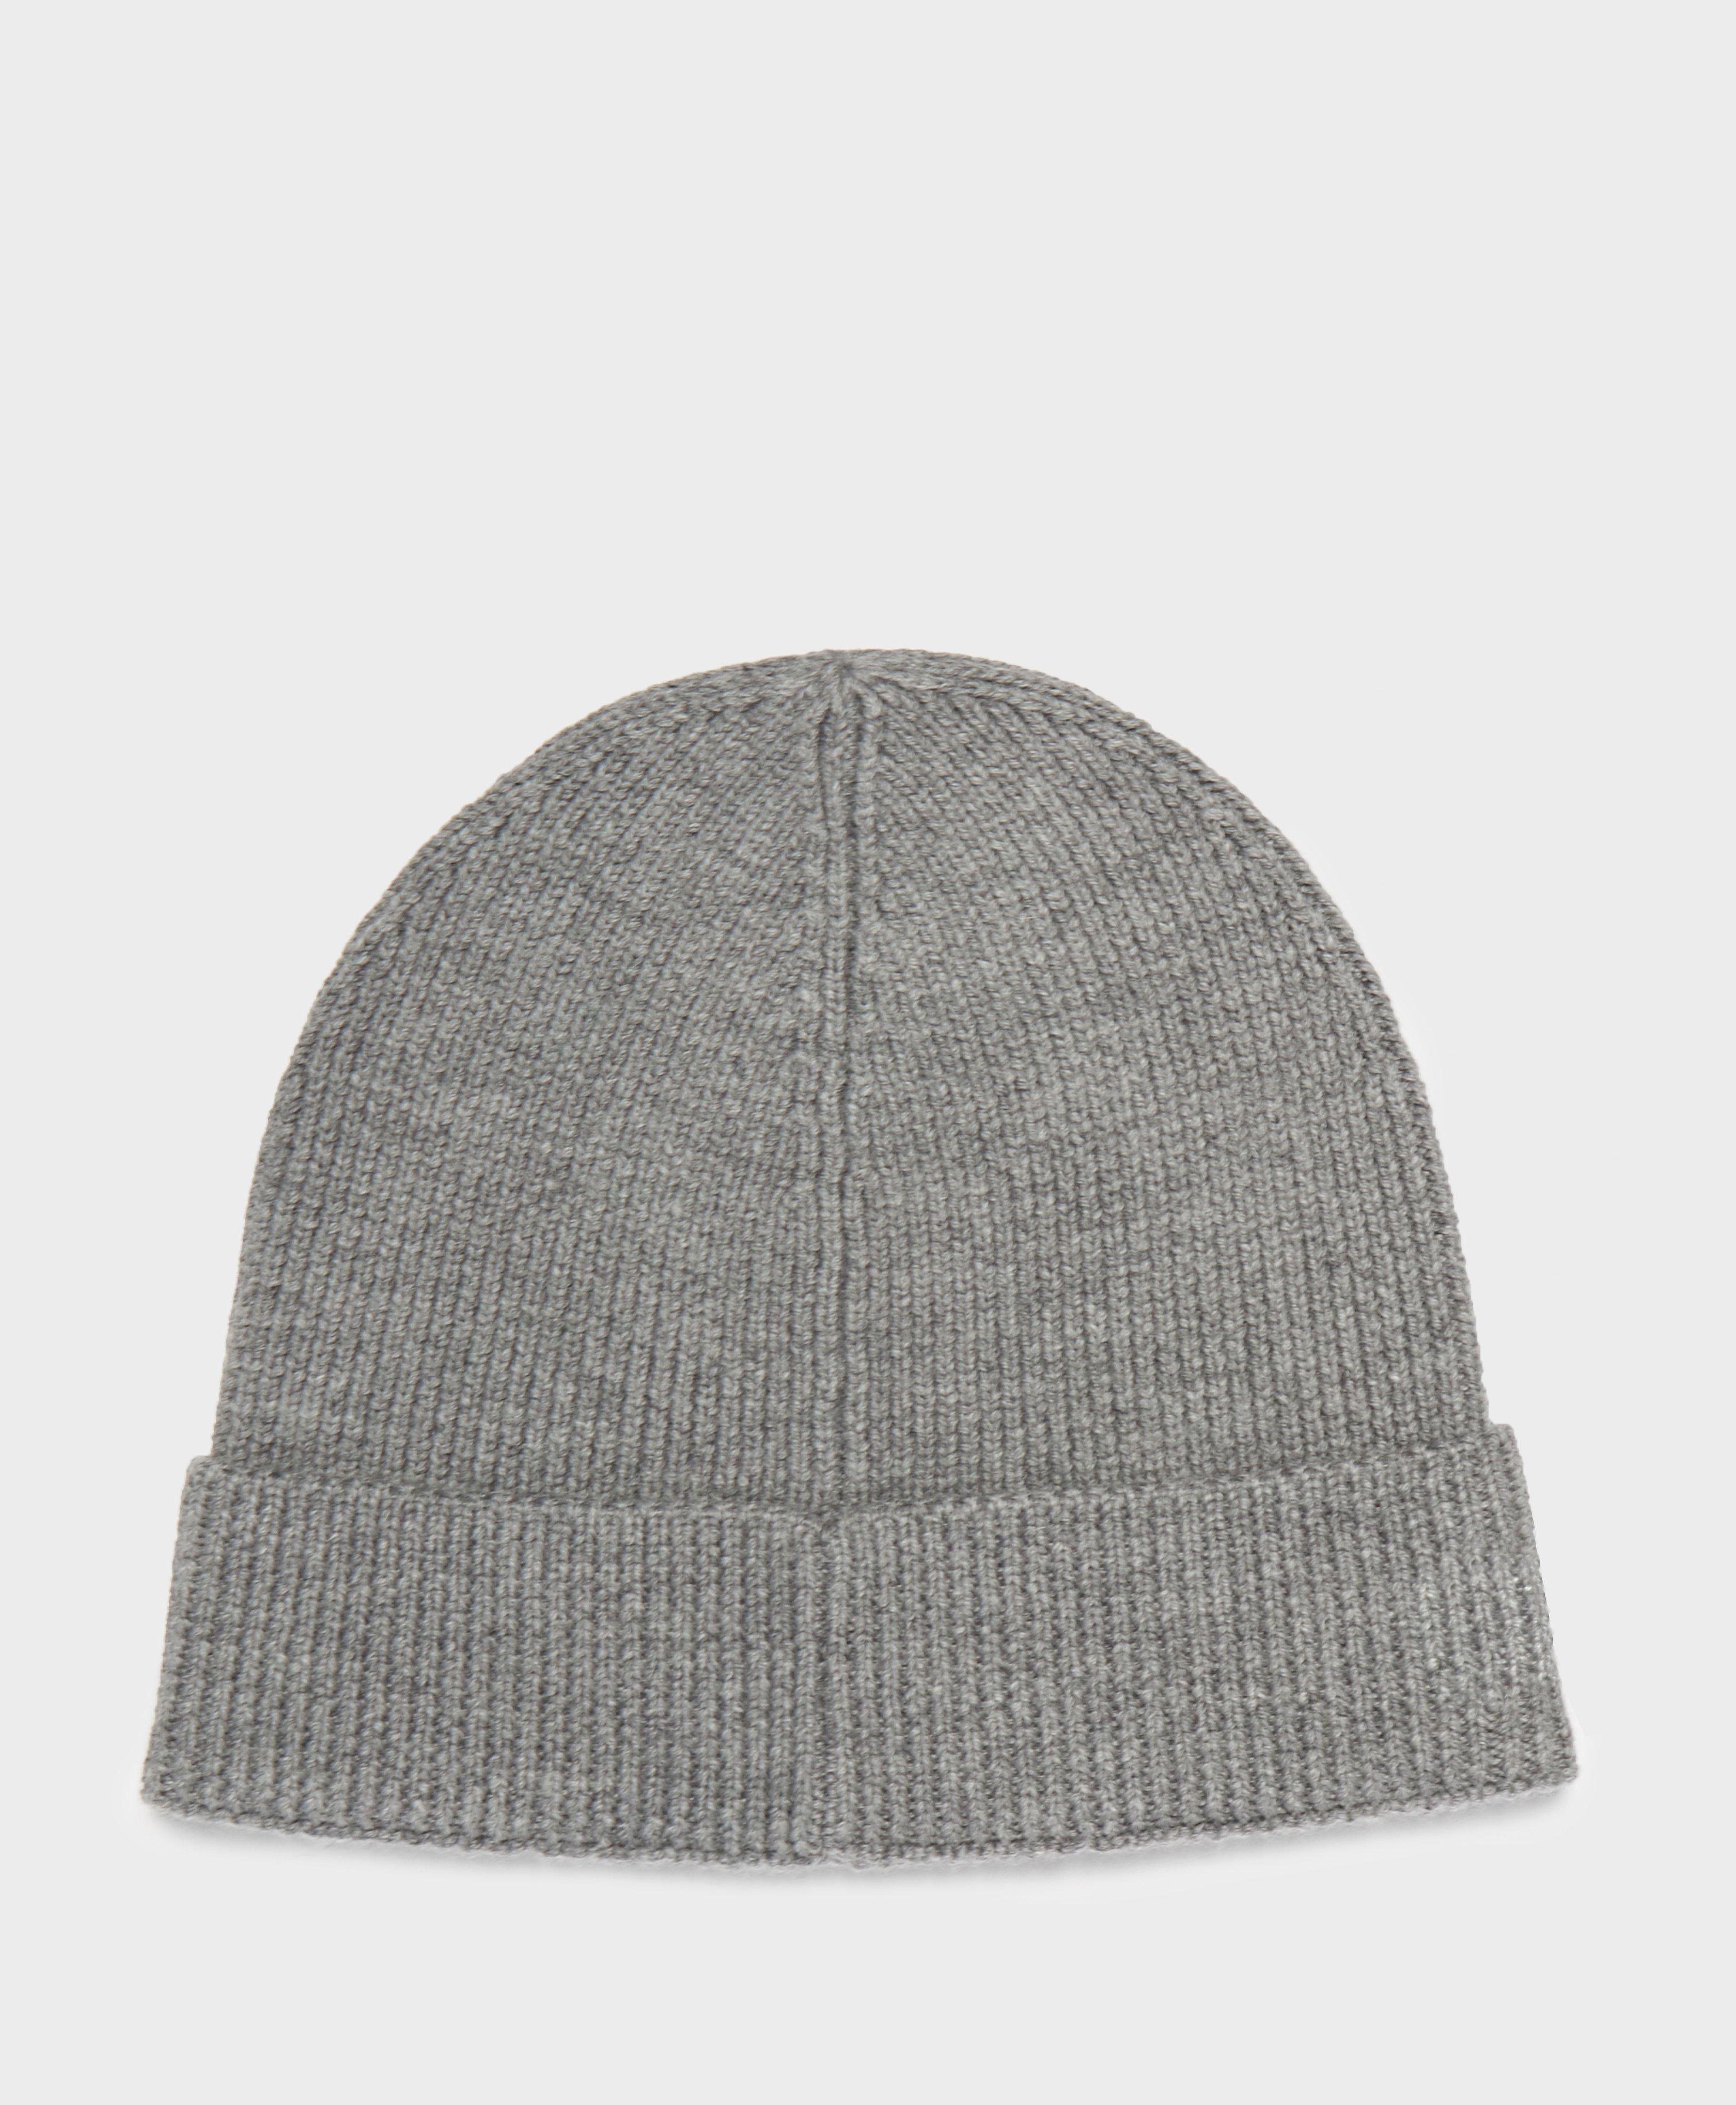 Lyst - Lacoste Ribbed Beanie in Gray for Men a48ca1f26c41